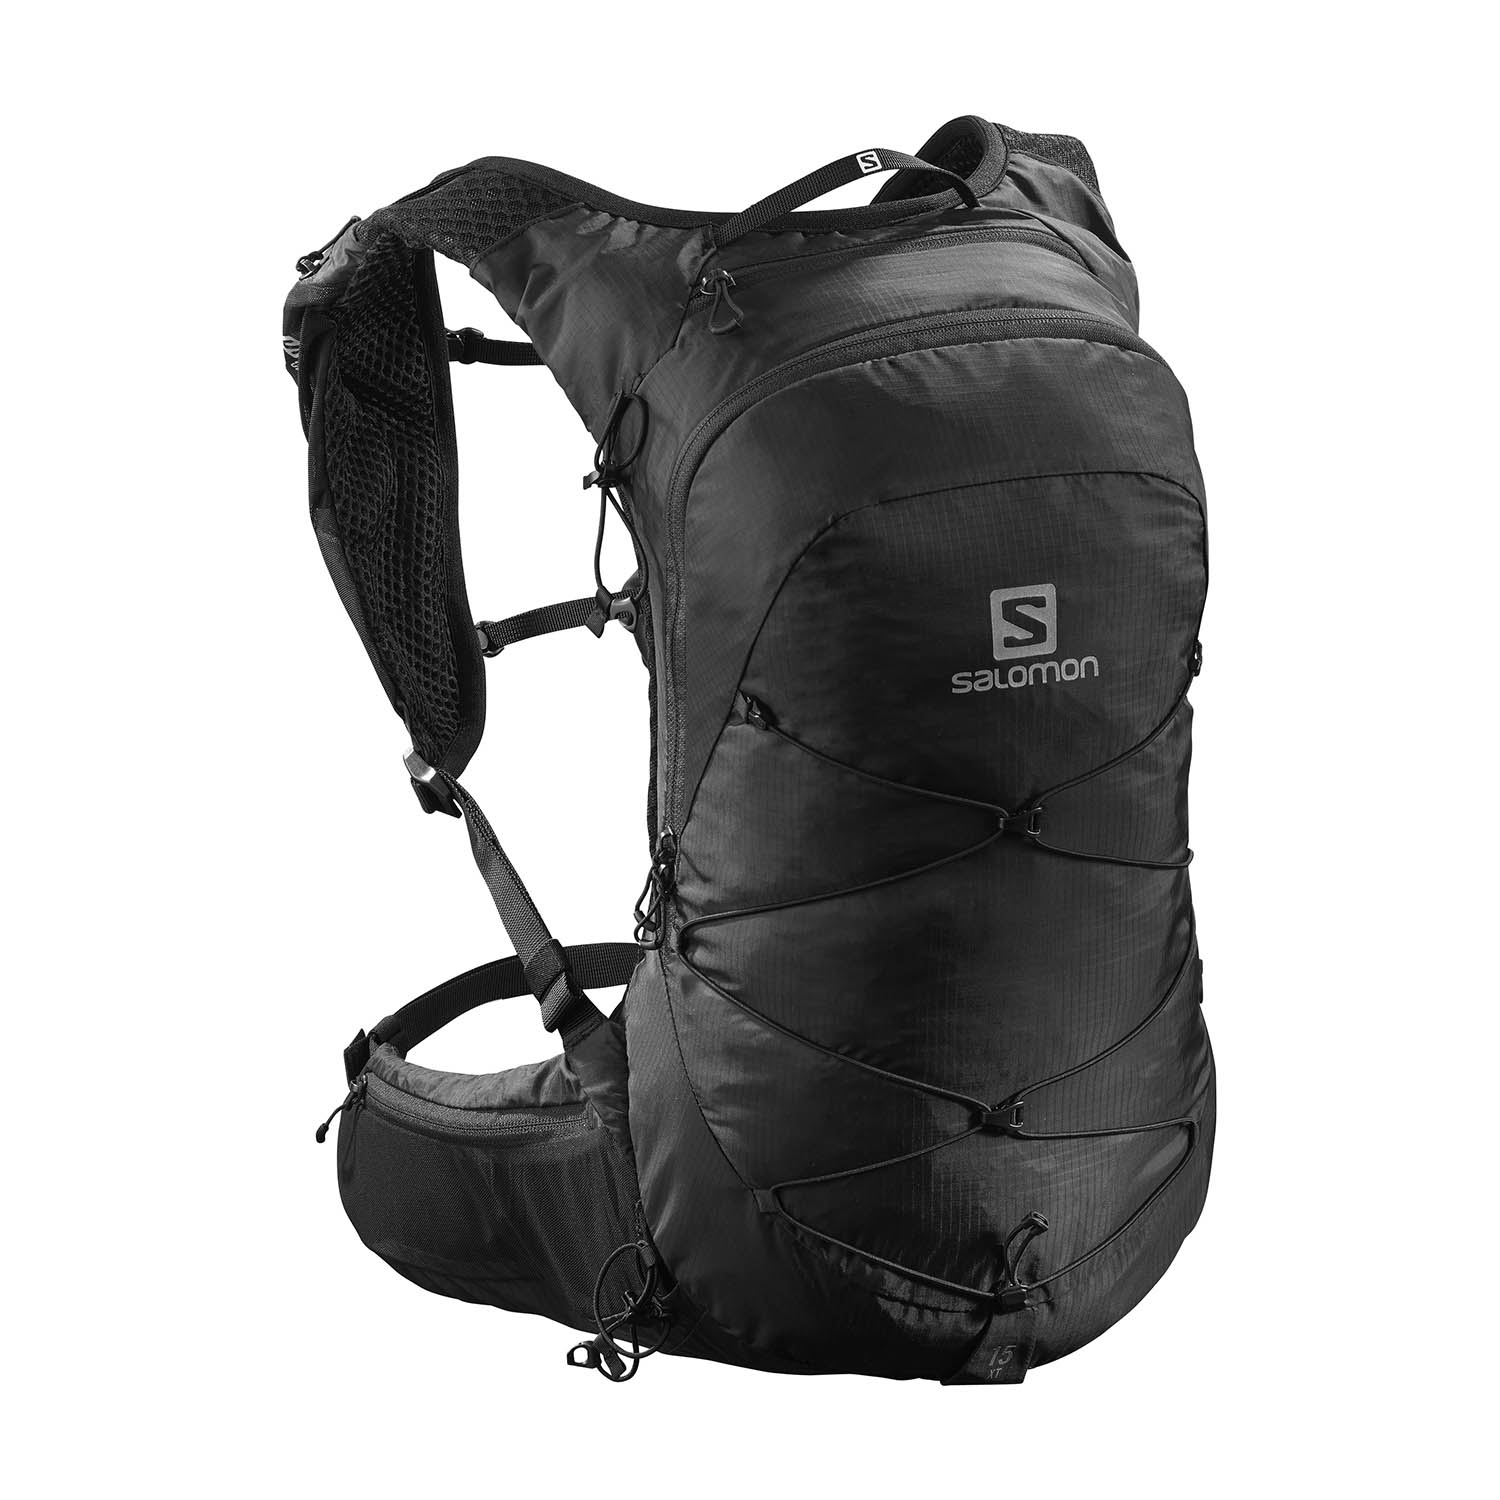 Salomon XT 15 Backpack - Black